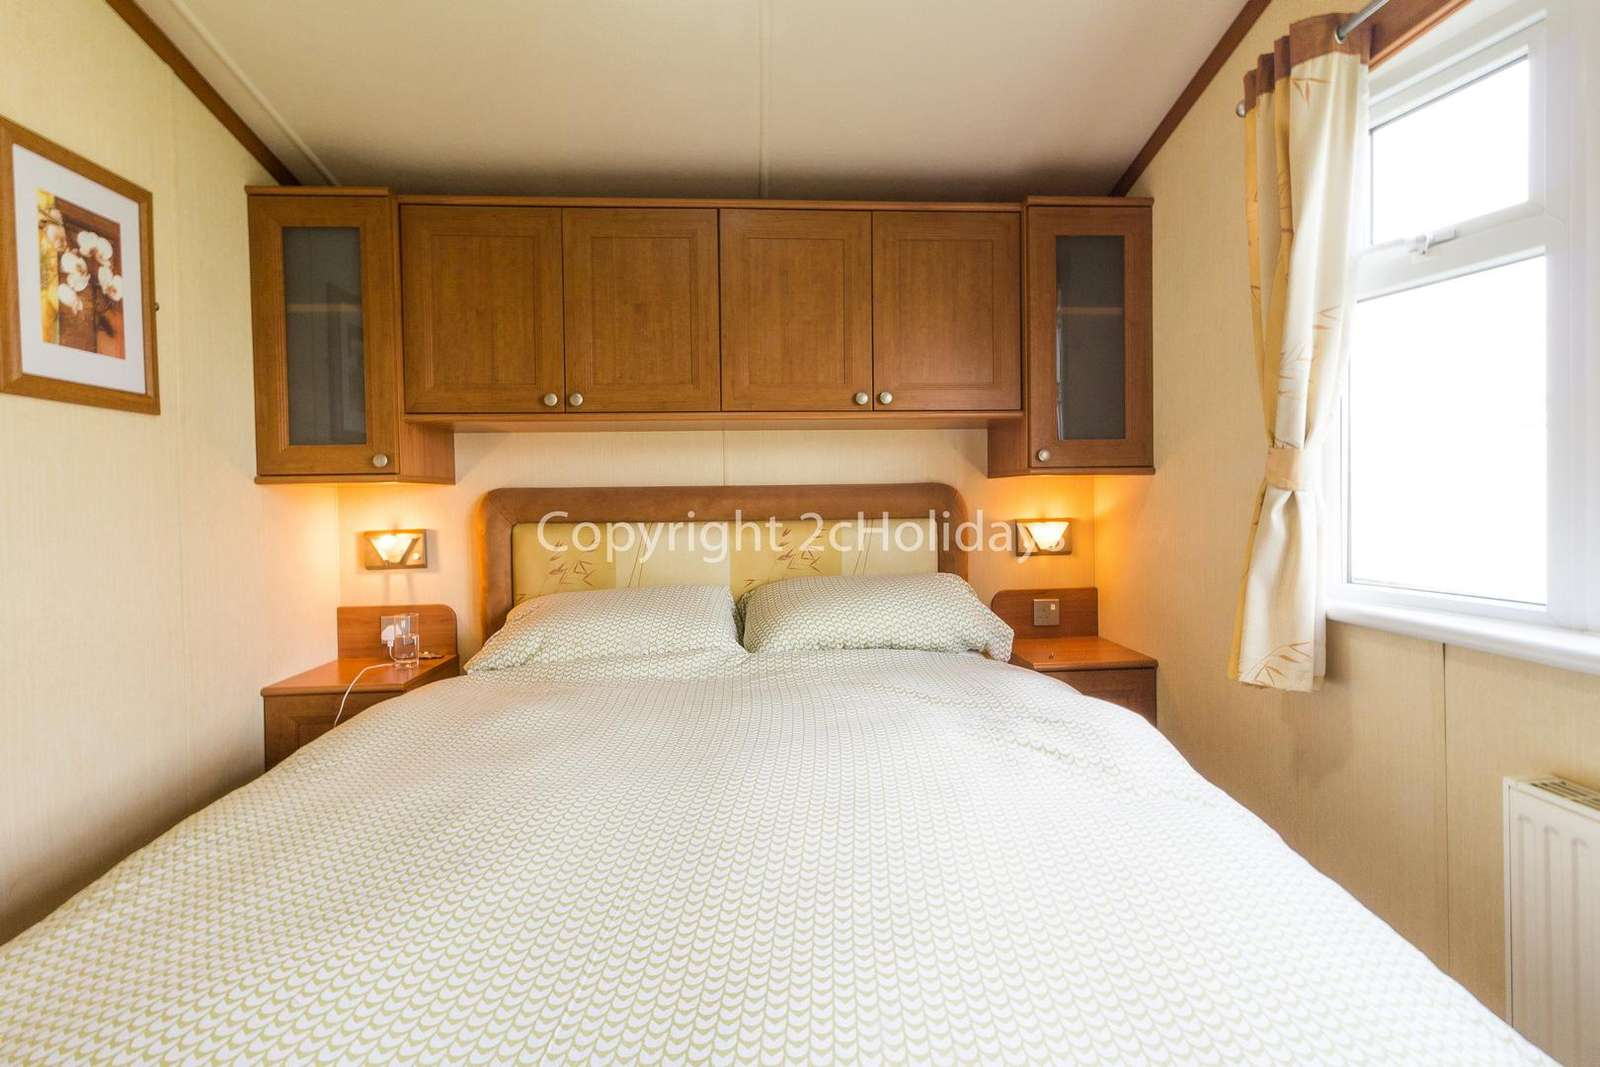 A beautiful master bedroom with an en-suite!